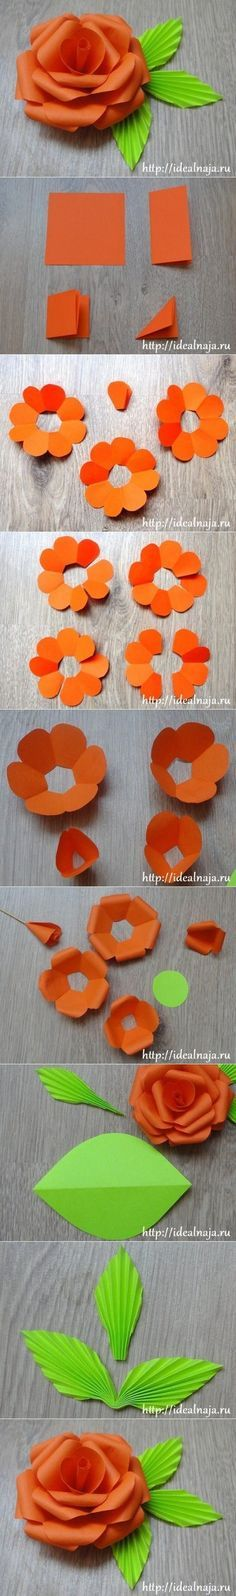 Mar 2019 - Paper flowers - tutorials and inspiration. See more ideas about Paper flowers, Flower crafts and Diy flowers. Paper Flower Tutorial, Paper Flowers Diy, Handmade Flowers, Flower Crafts, Fabric Flowers, Rose Tutorial, Flower Diy, Rose Flowers, Craft Flowers